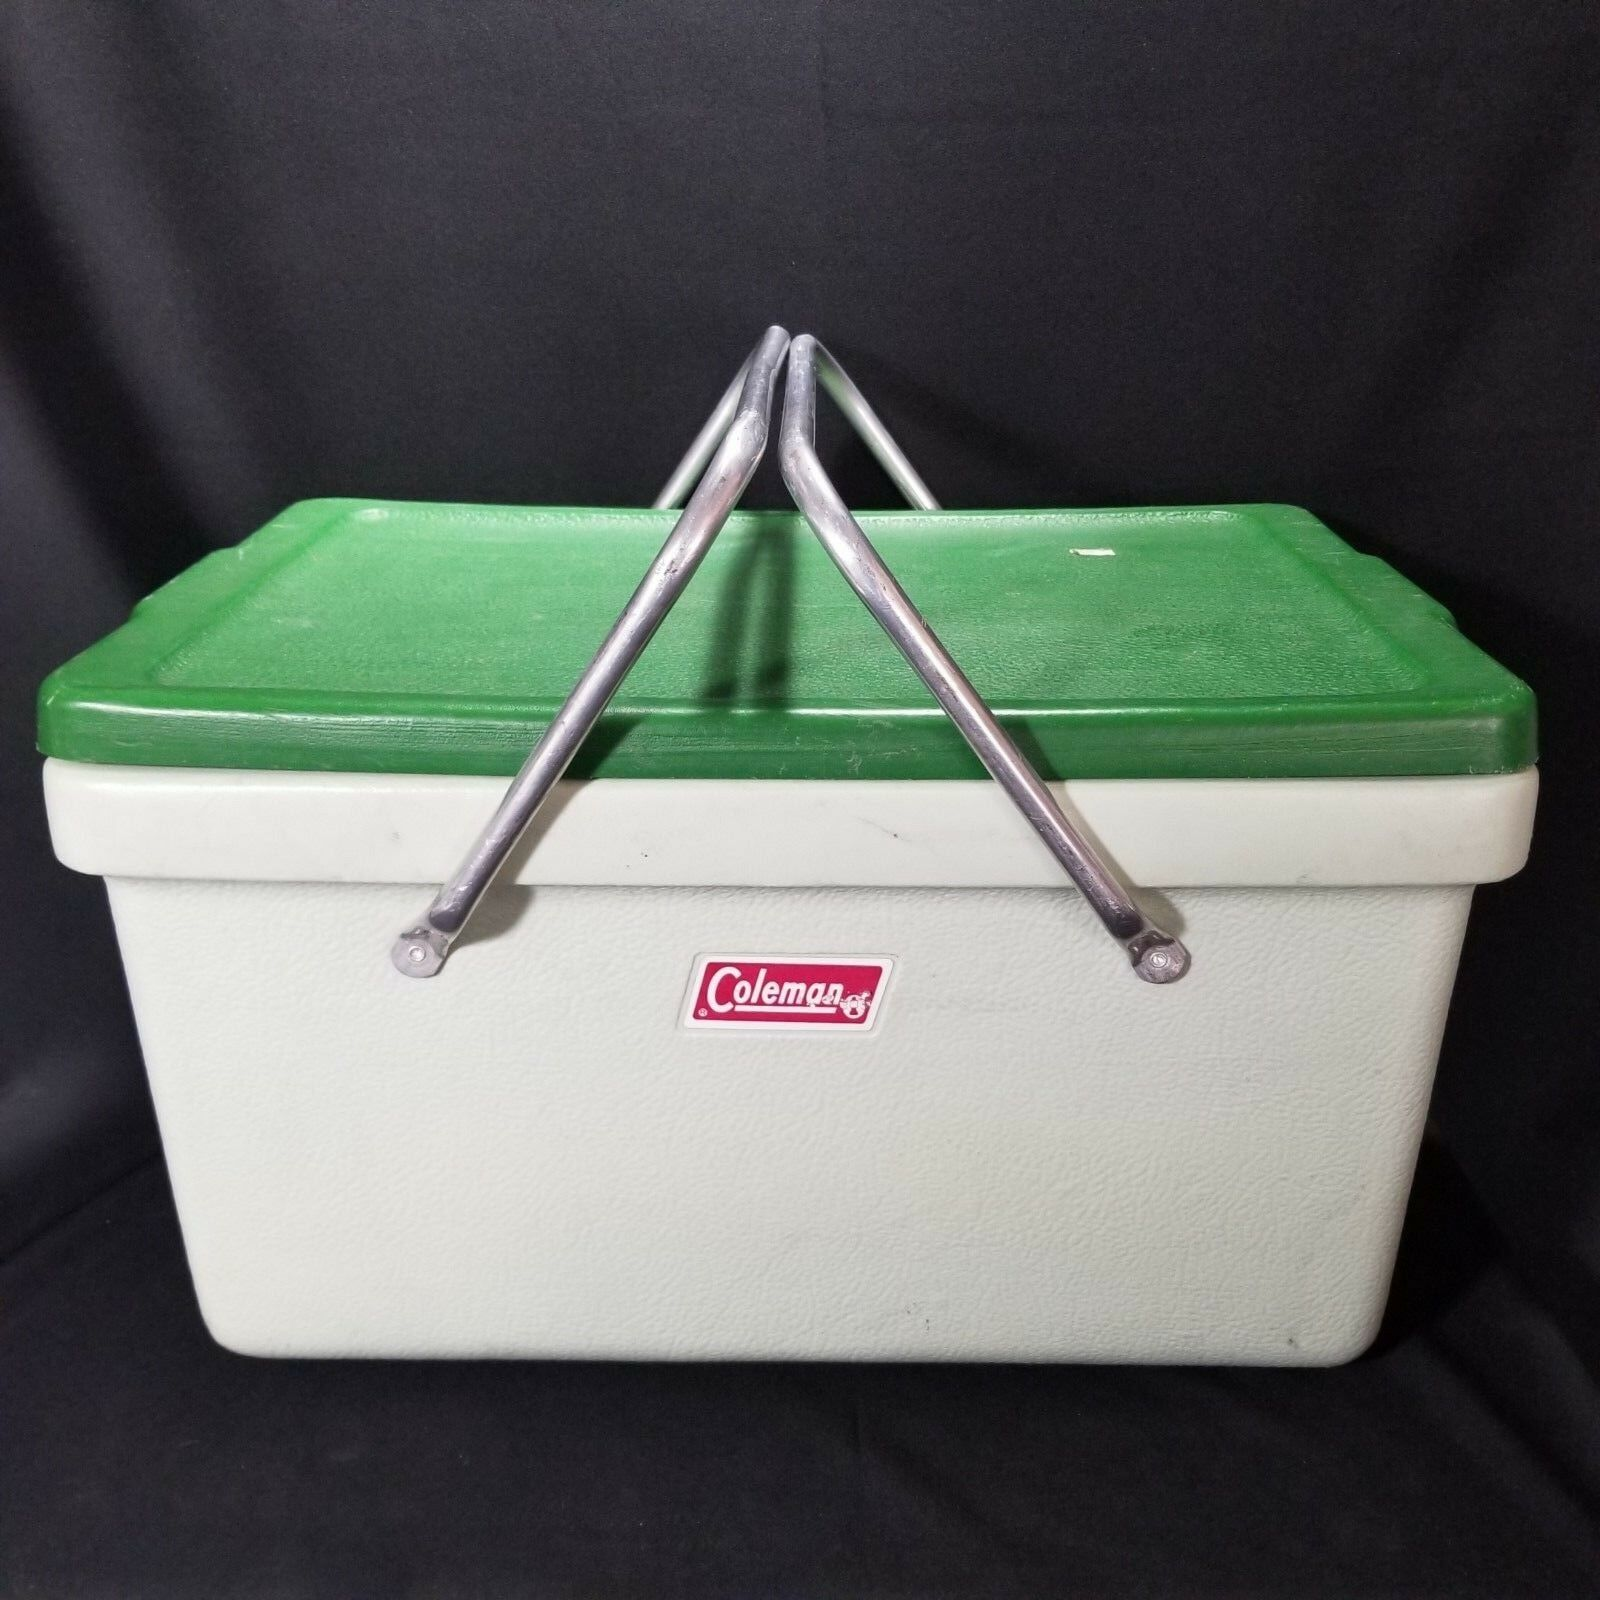 VTG Coleman 70's Mint Green Plastic With Metal Handles Cooler  Camping icechest  2018 latest